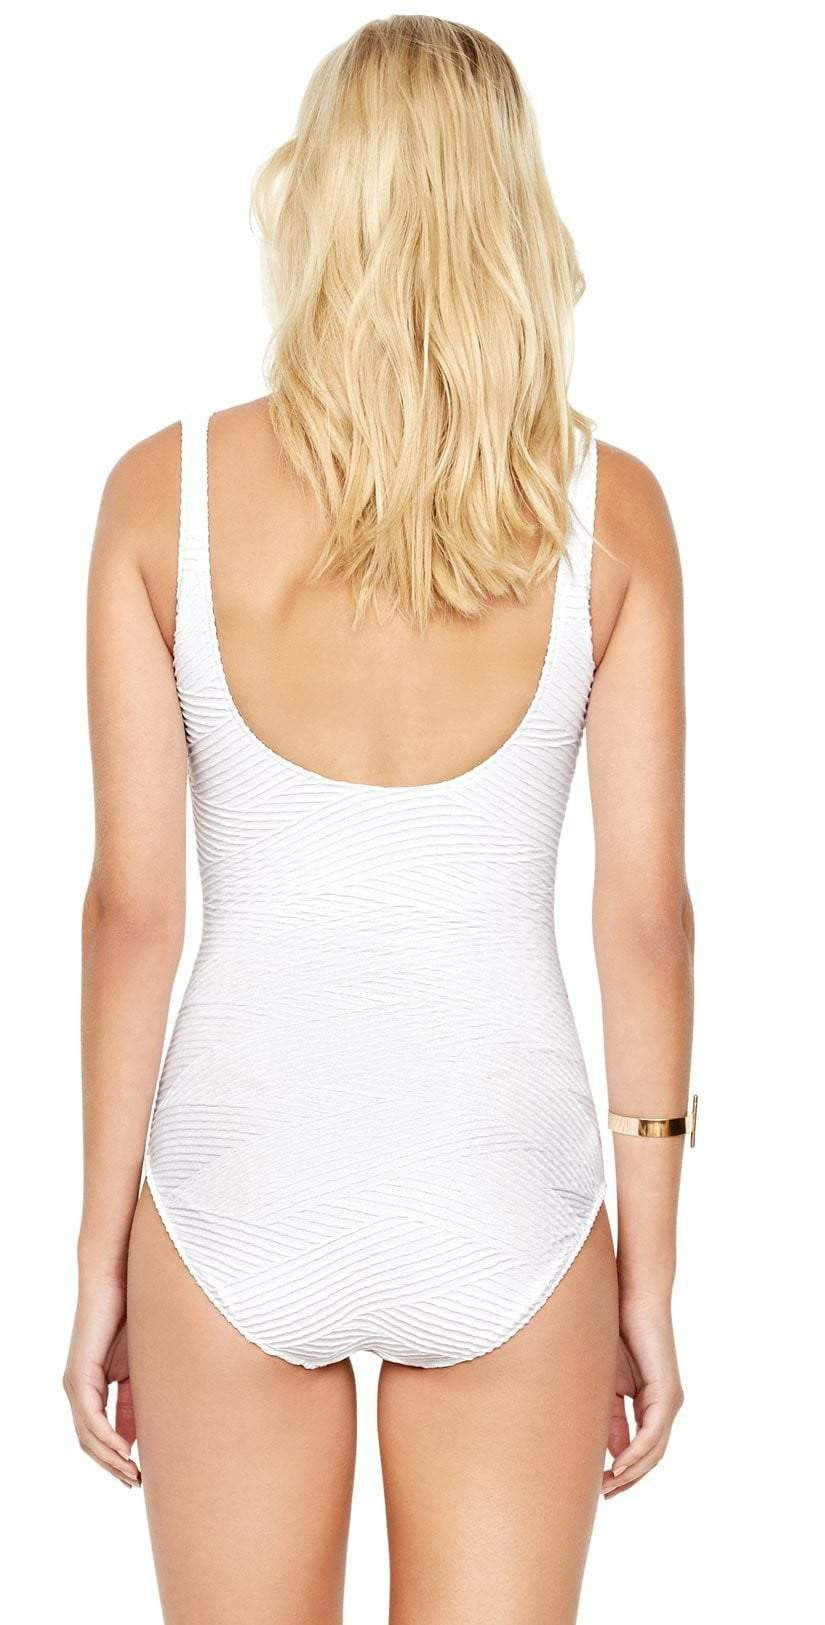 Gottex Essence Square Neck Tank One Piece Swimsuit in White 18EN-173U-100: